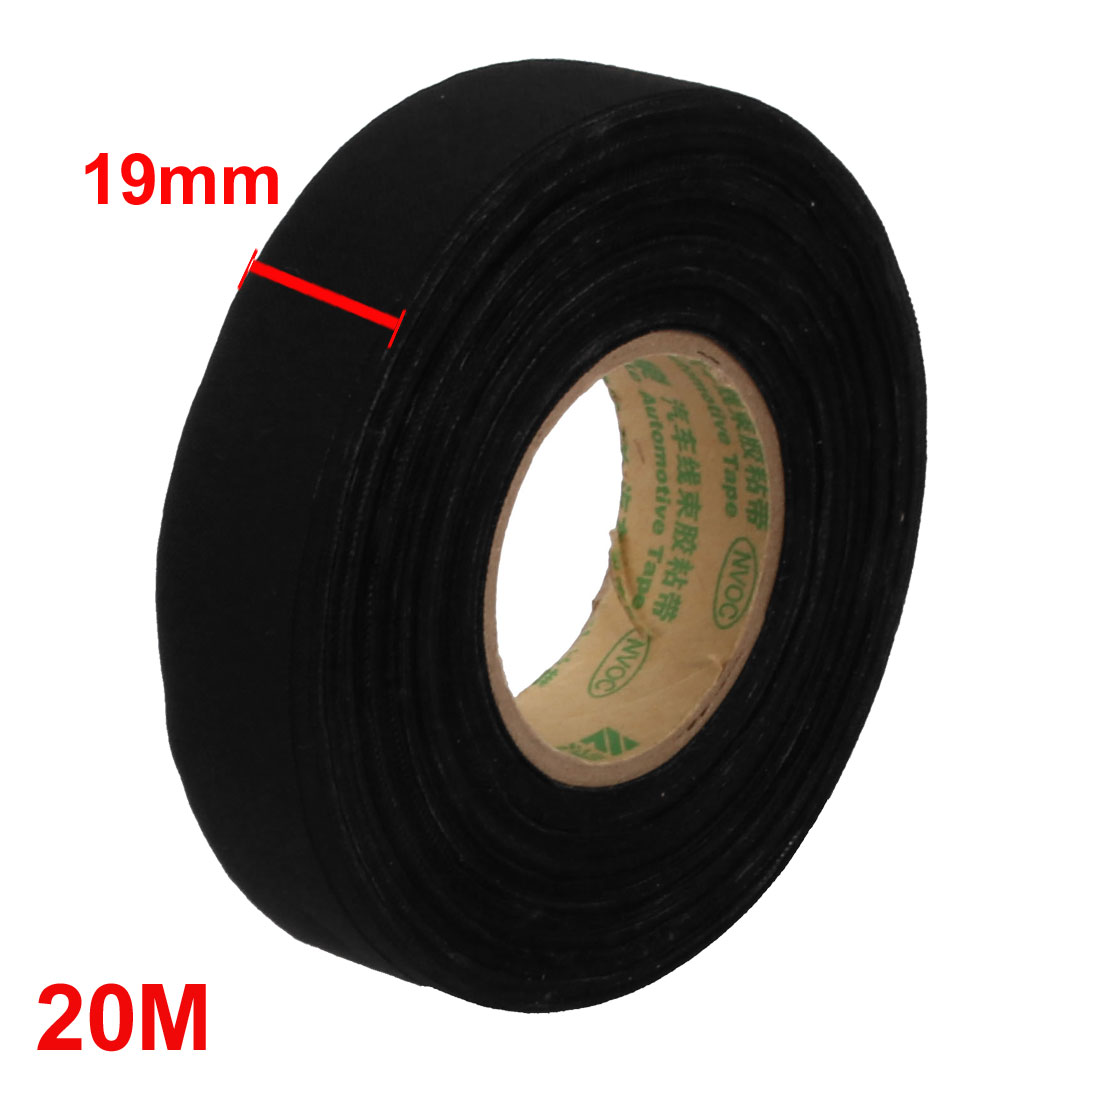 hight resolution of unique bargains black 20m long 19mm width insulation adhesive cloth tape car wire harness tape